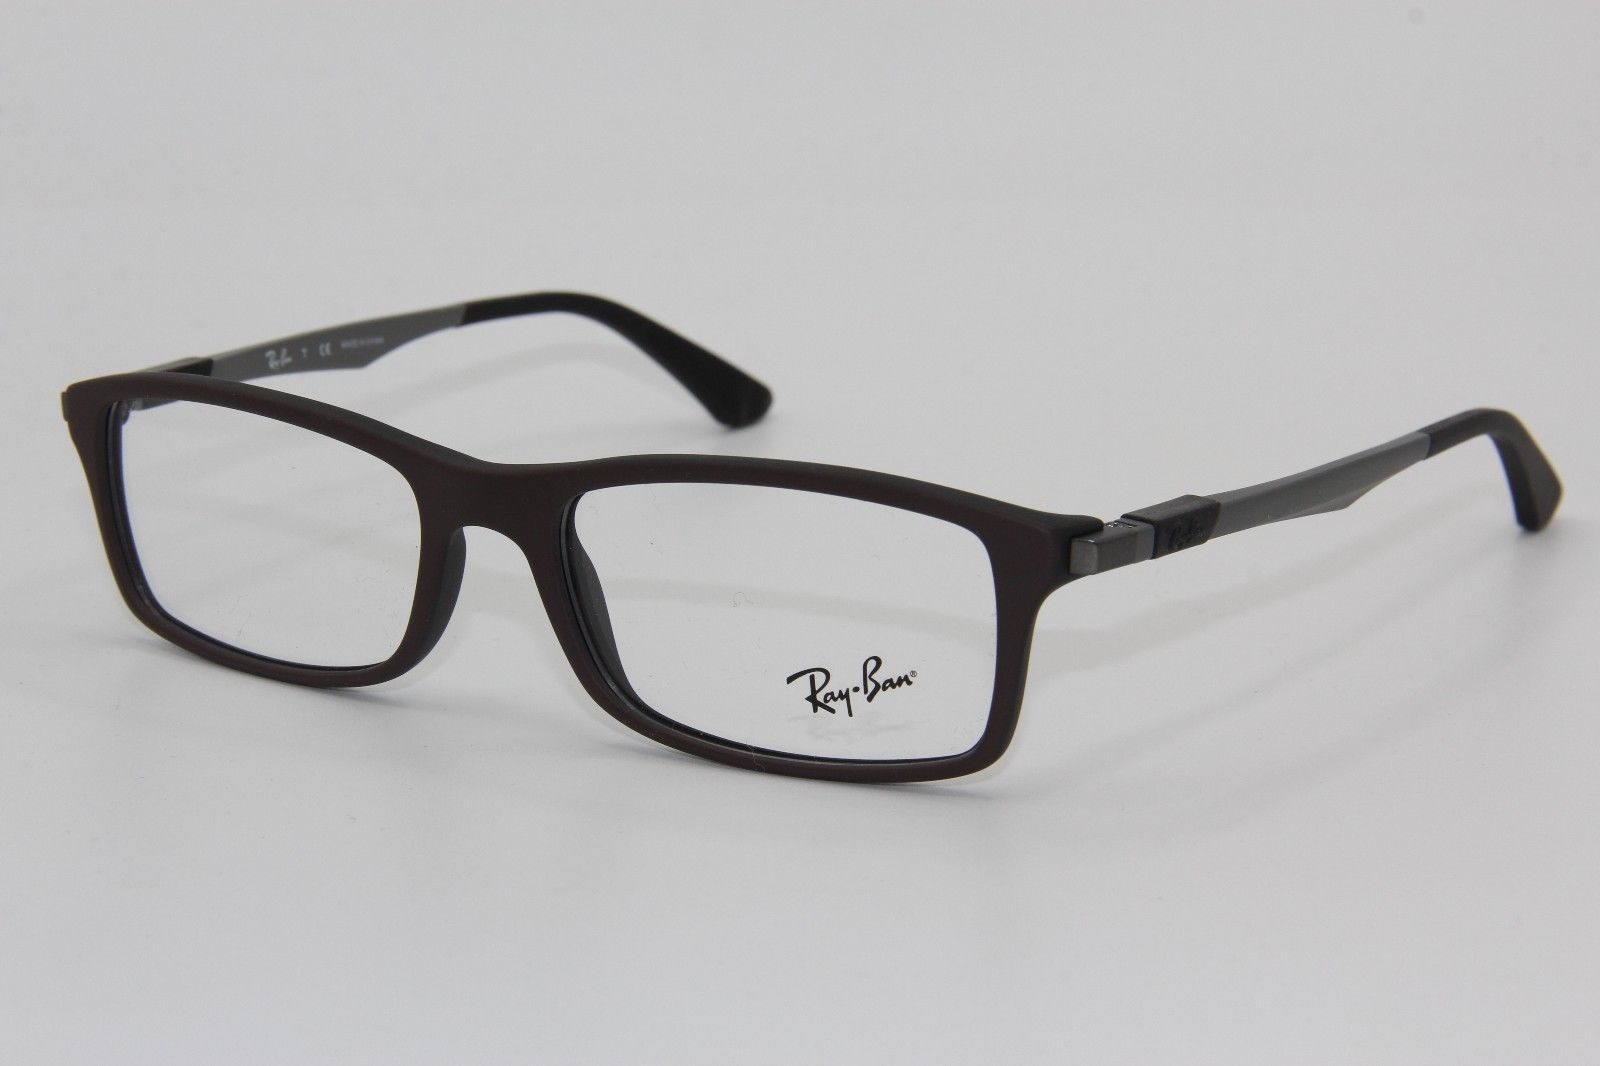 a2c39416a2 Ray Ban 7017 Frame